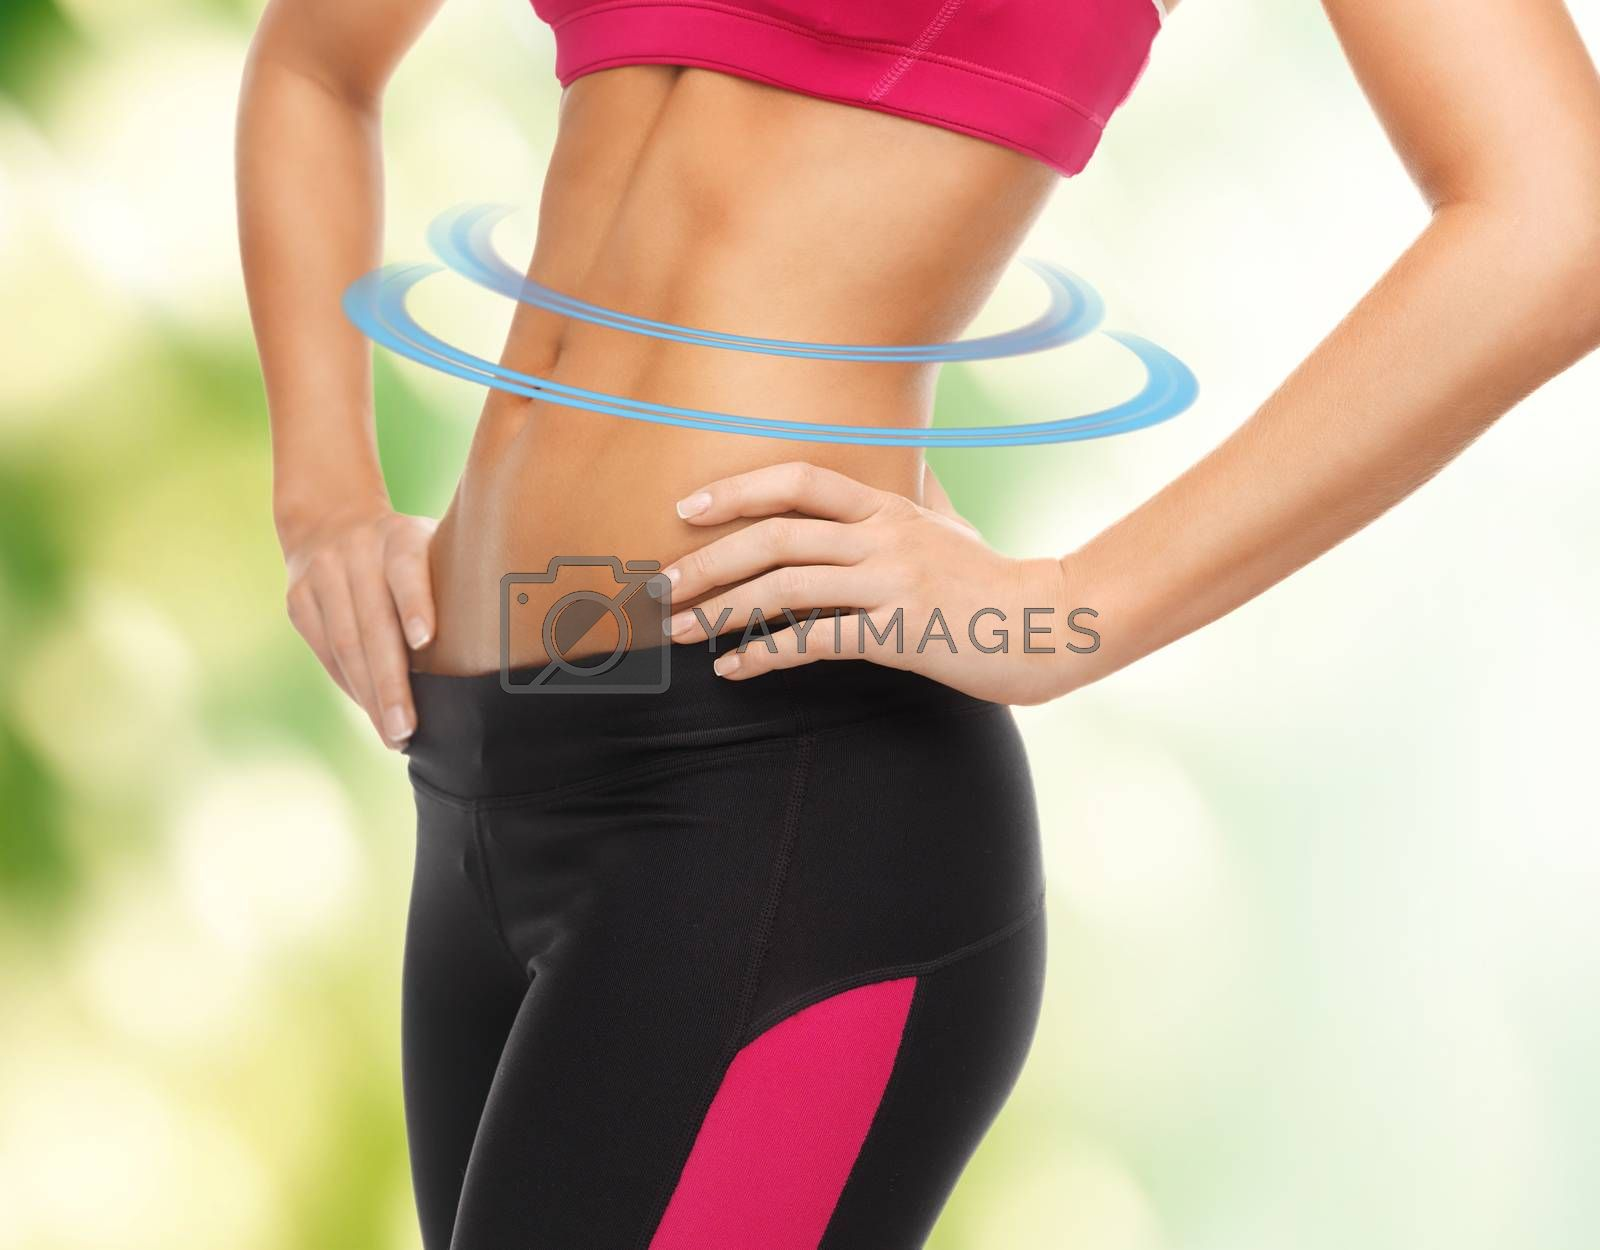 woman trained abs by dolgachov